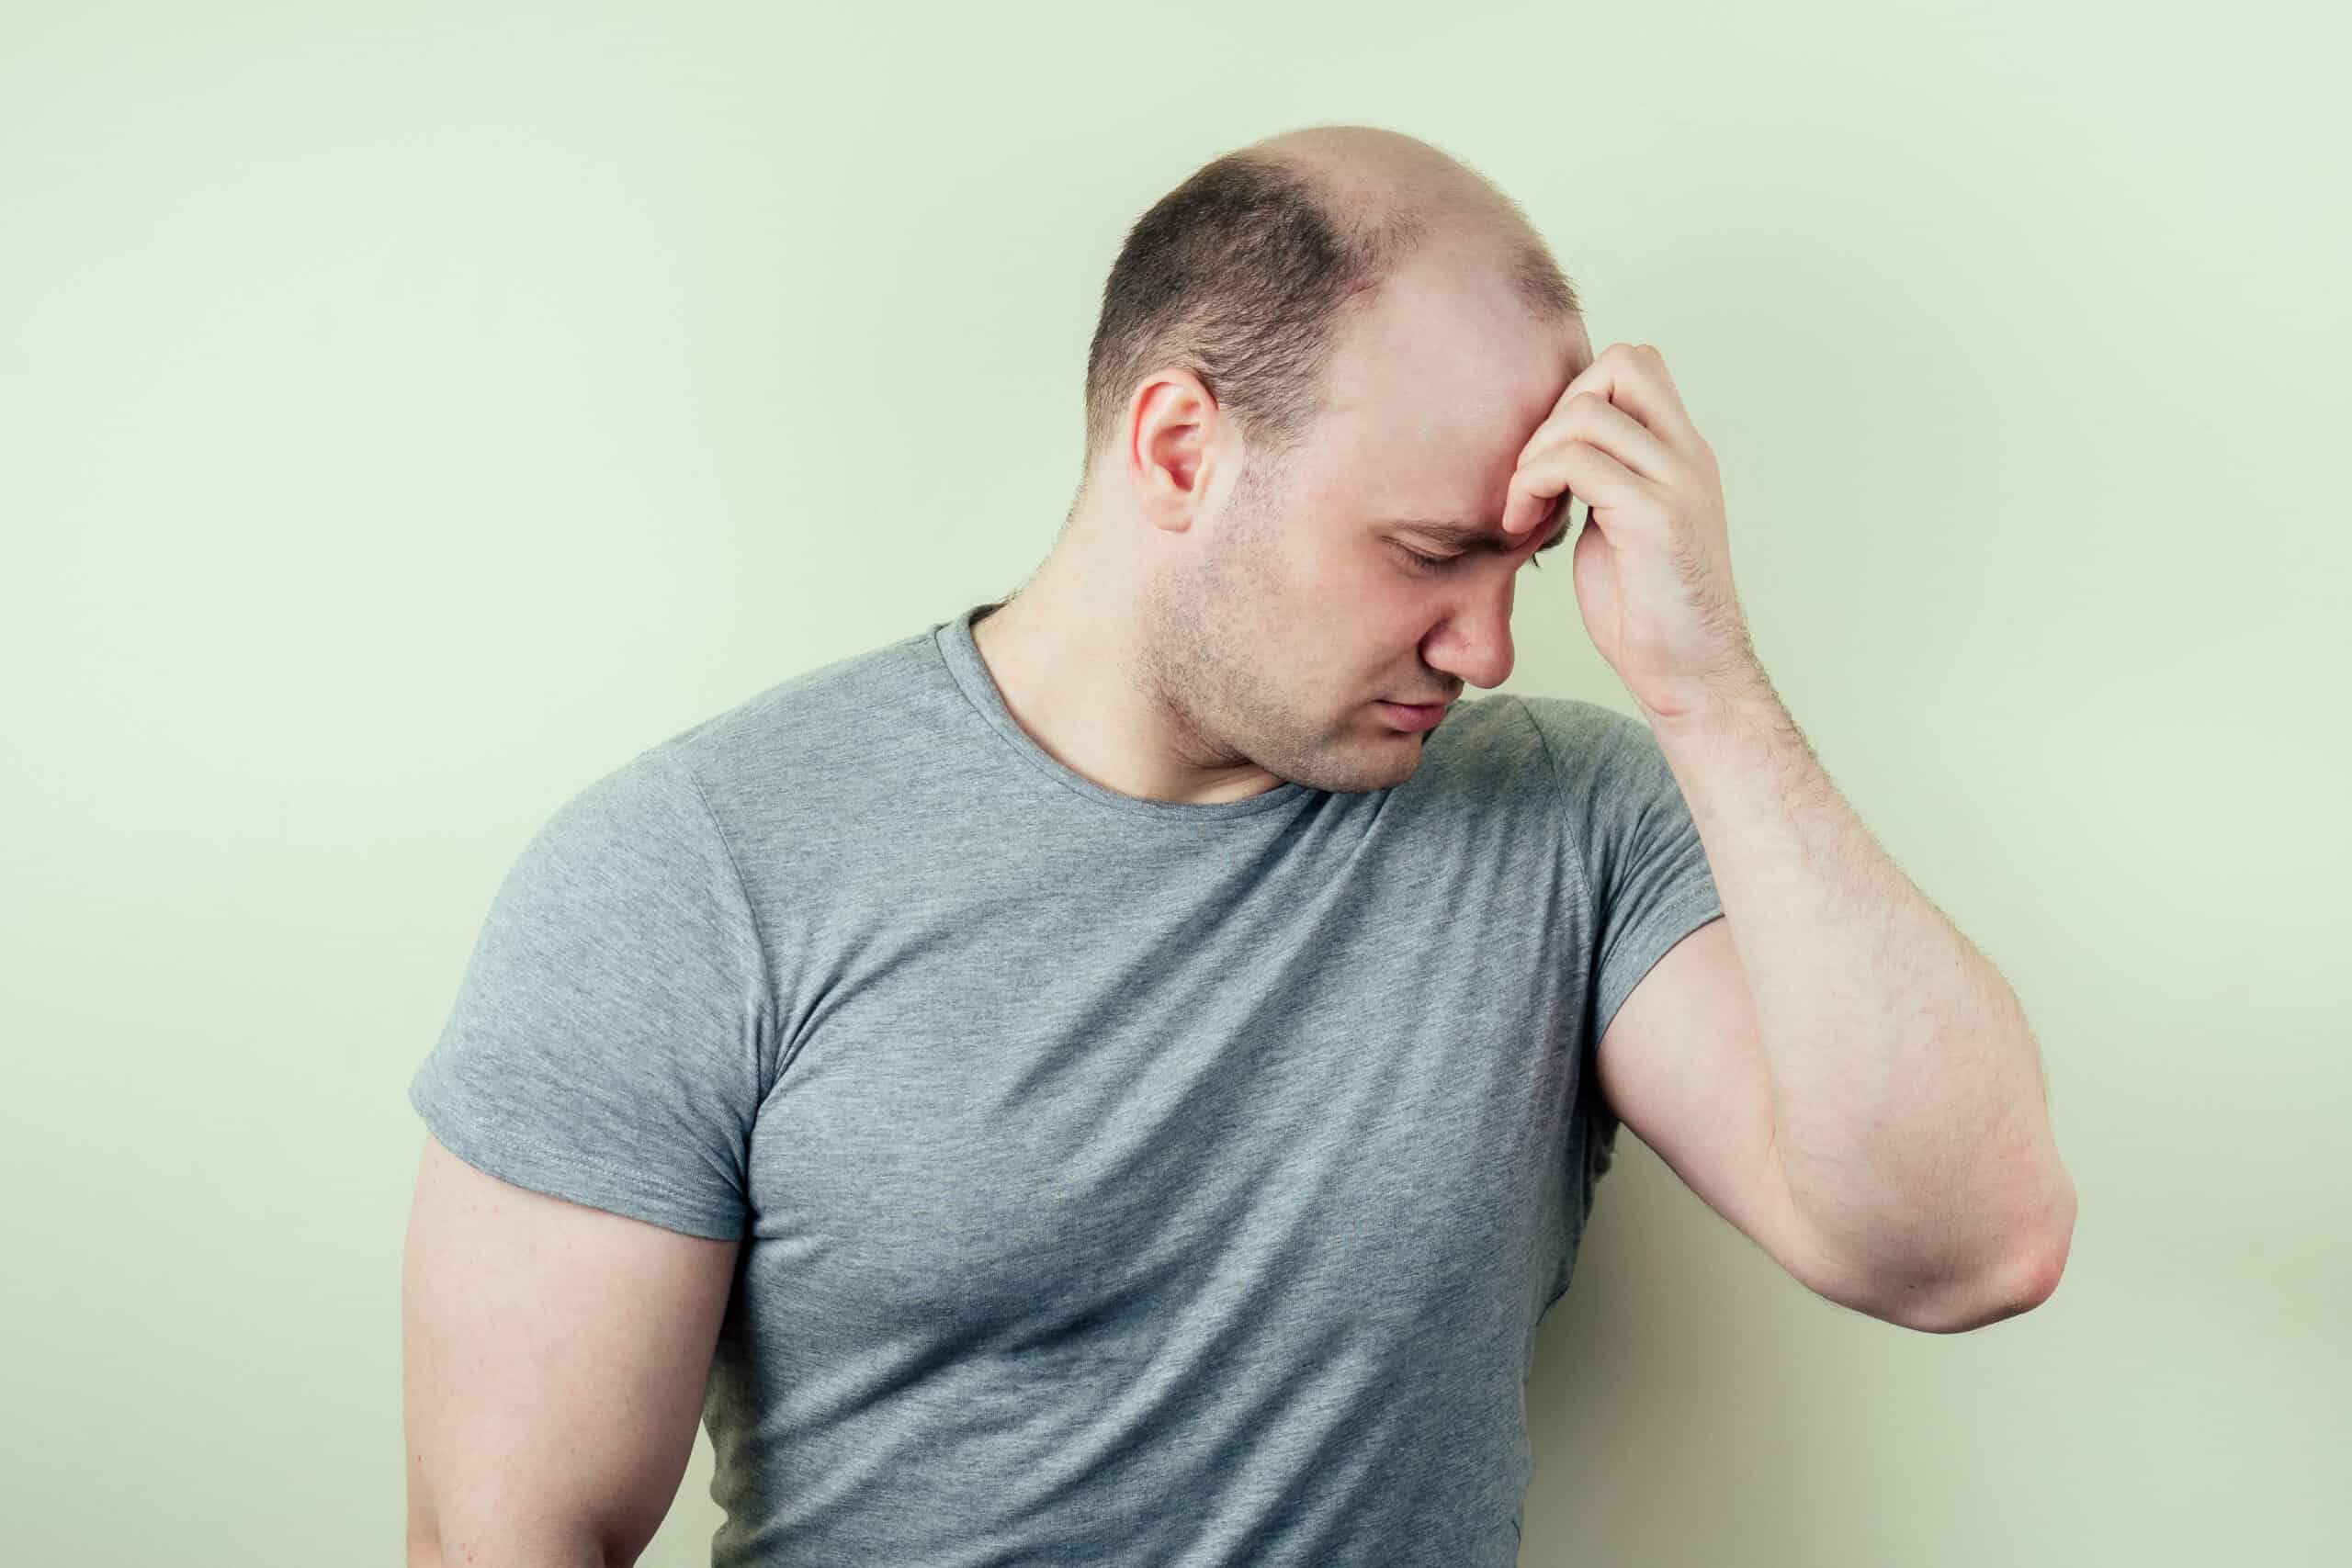 A man upset over his male pattern baldness